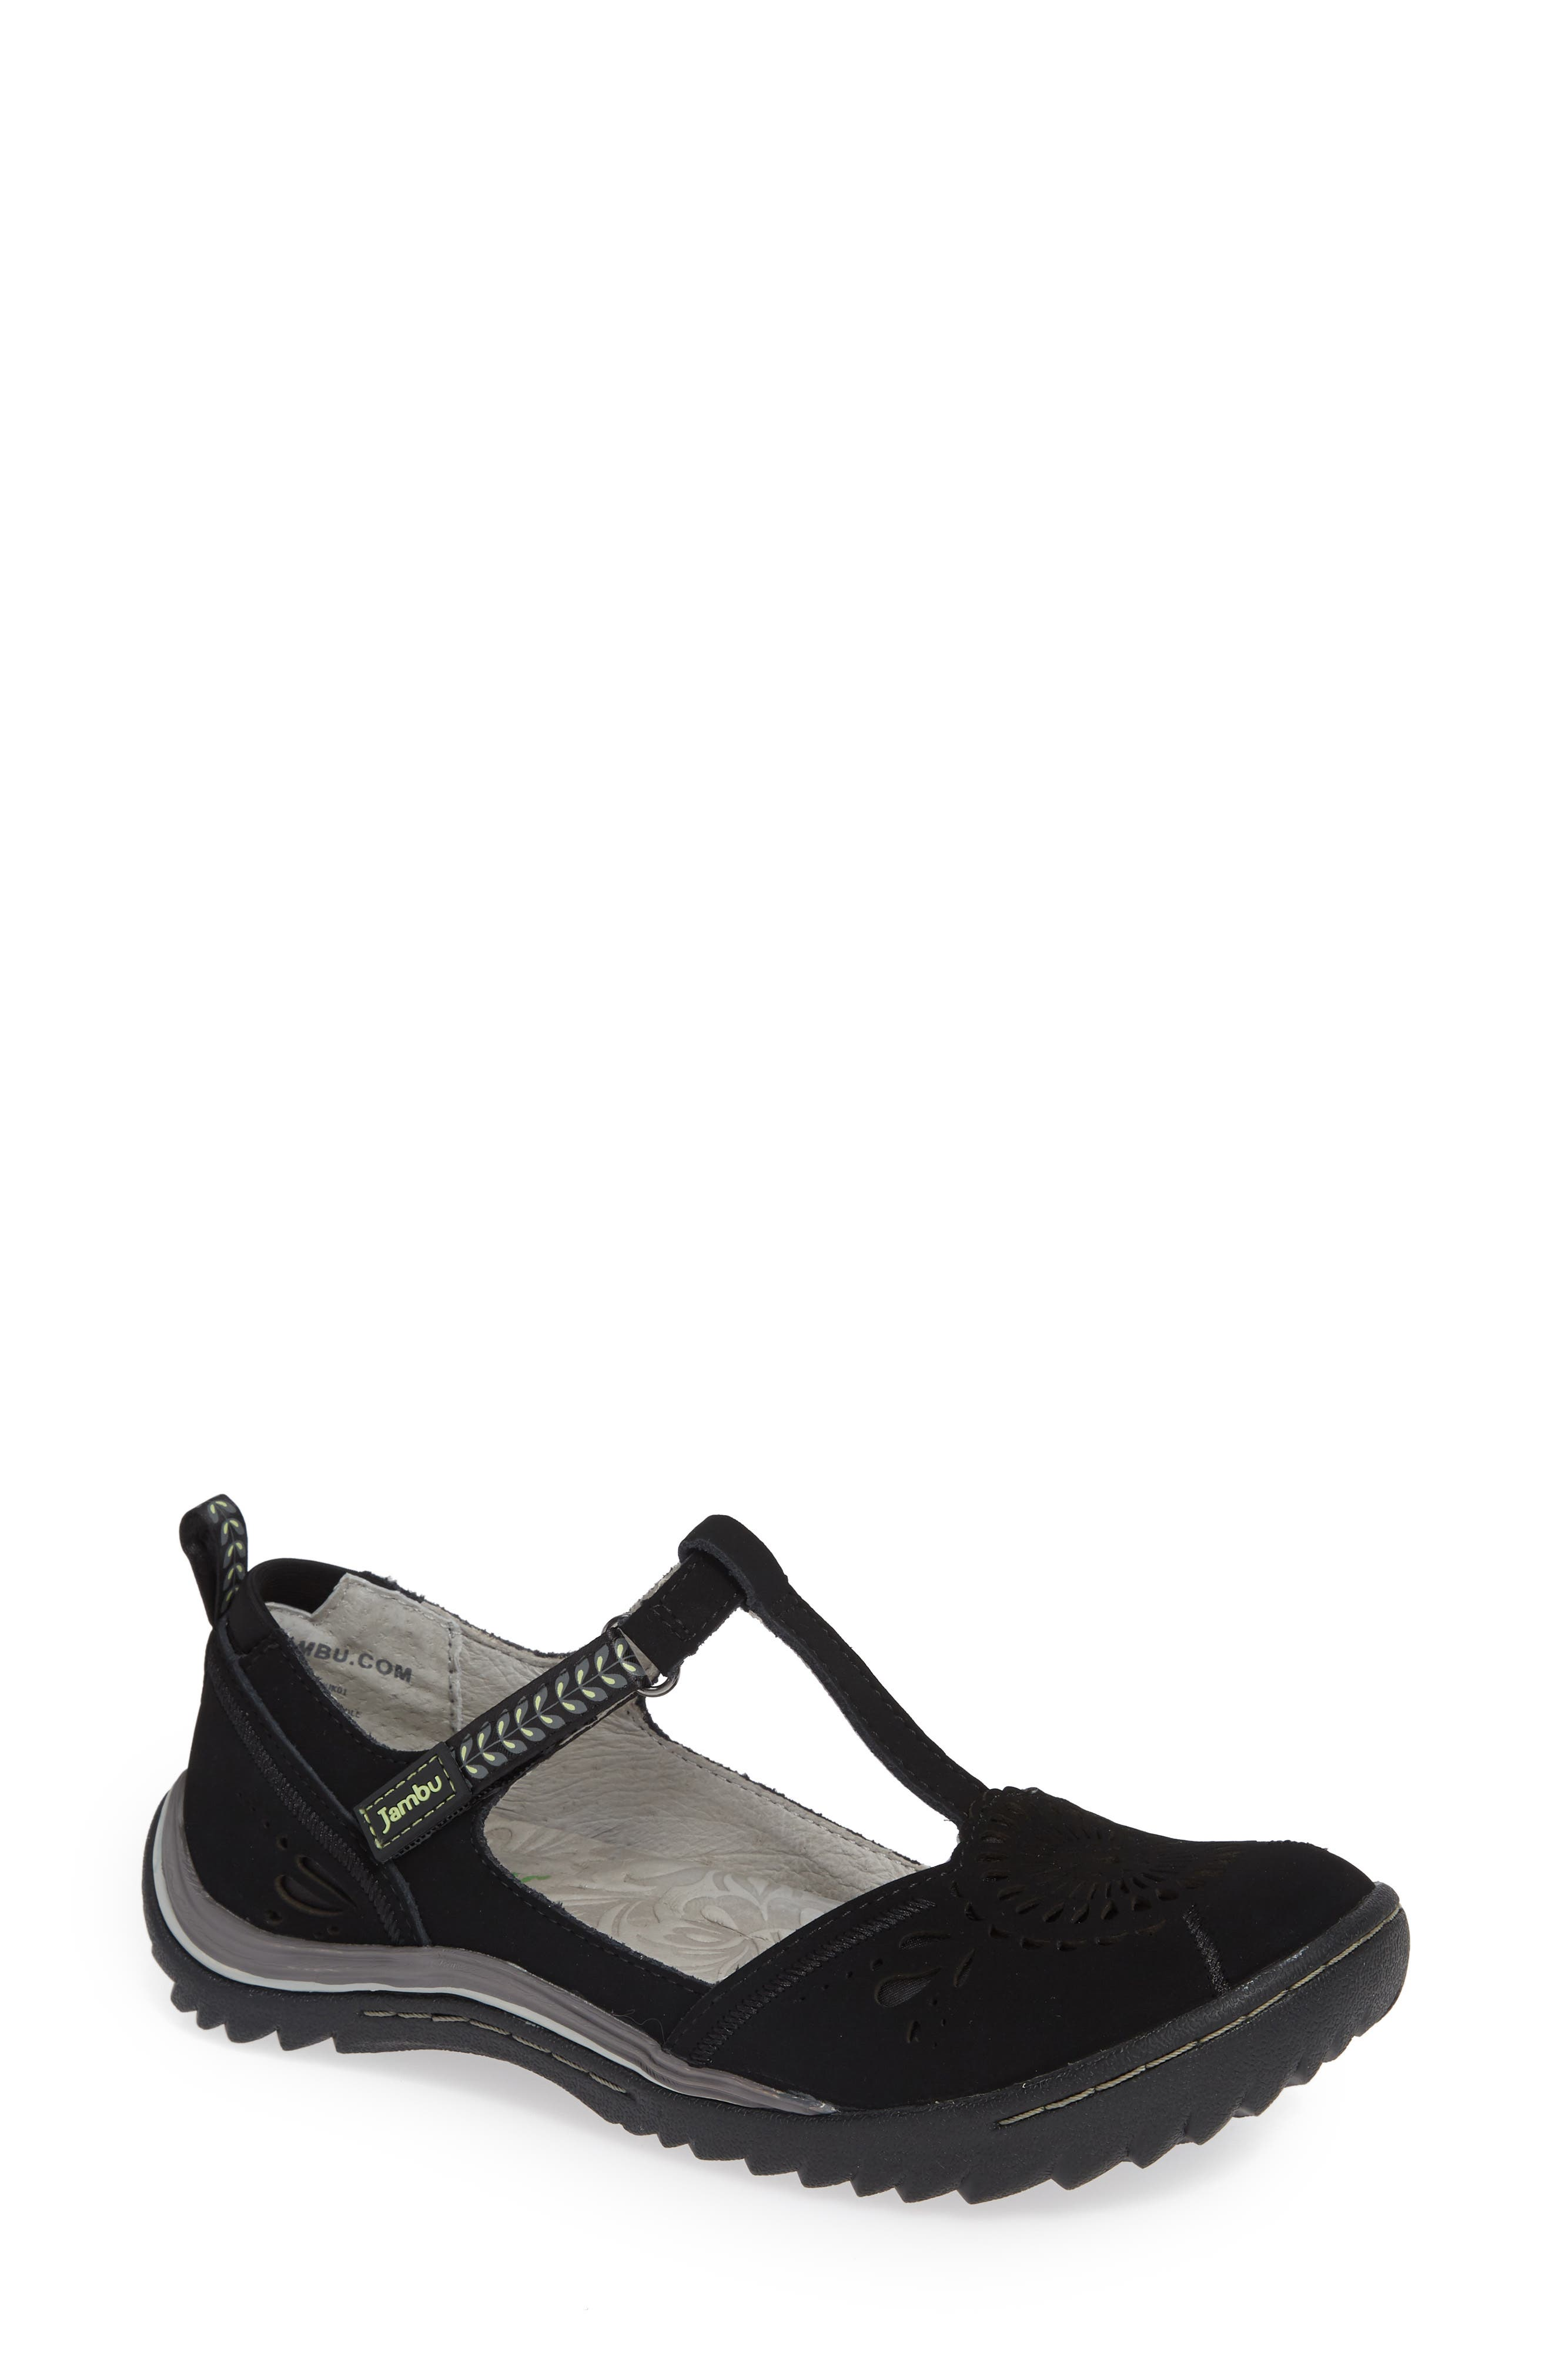 Sunkist Strappy Sneaker,                             Main thumbnail 1, color,                             BLACK/ CHIVE NUBUCK LEATHER